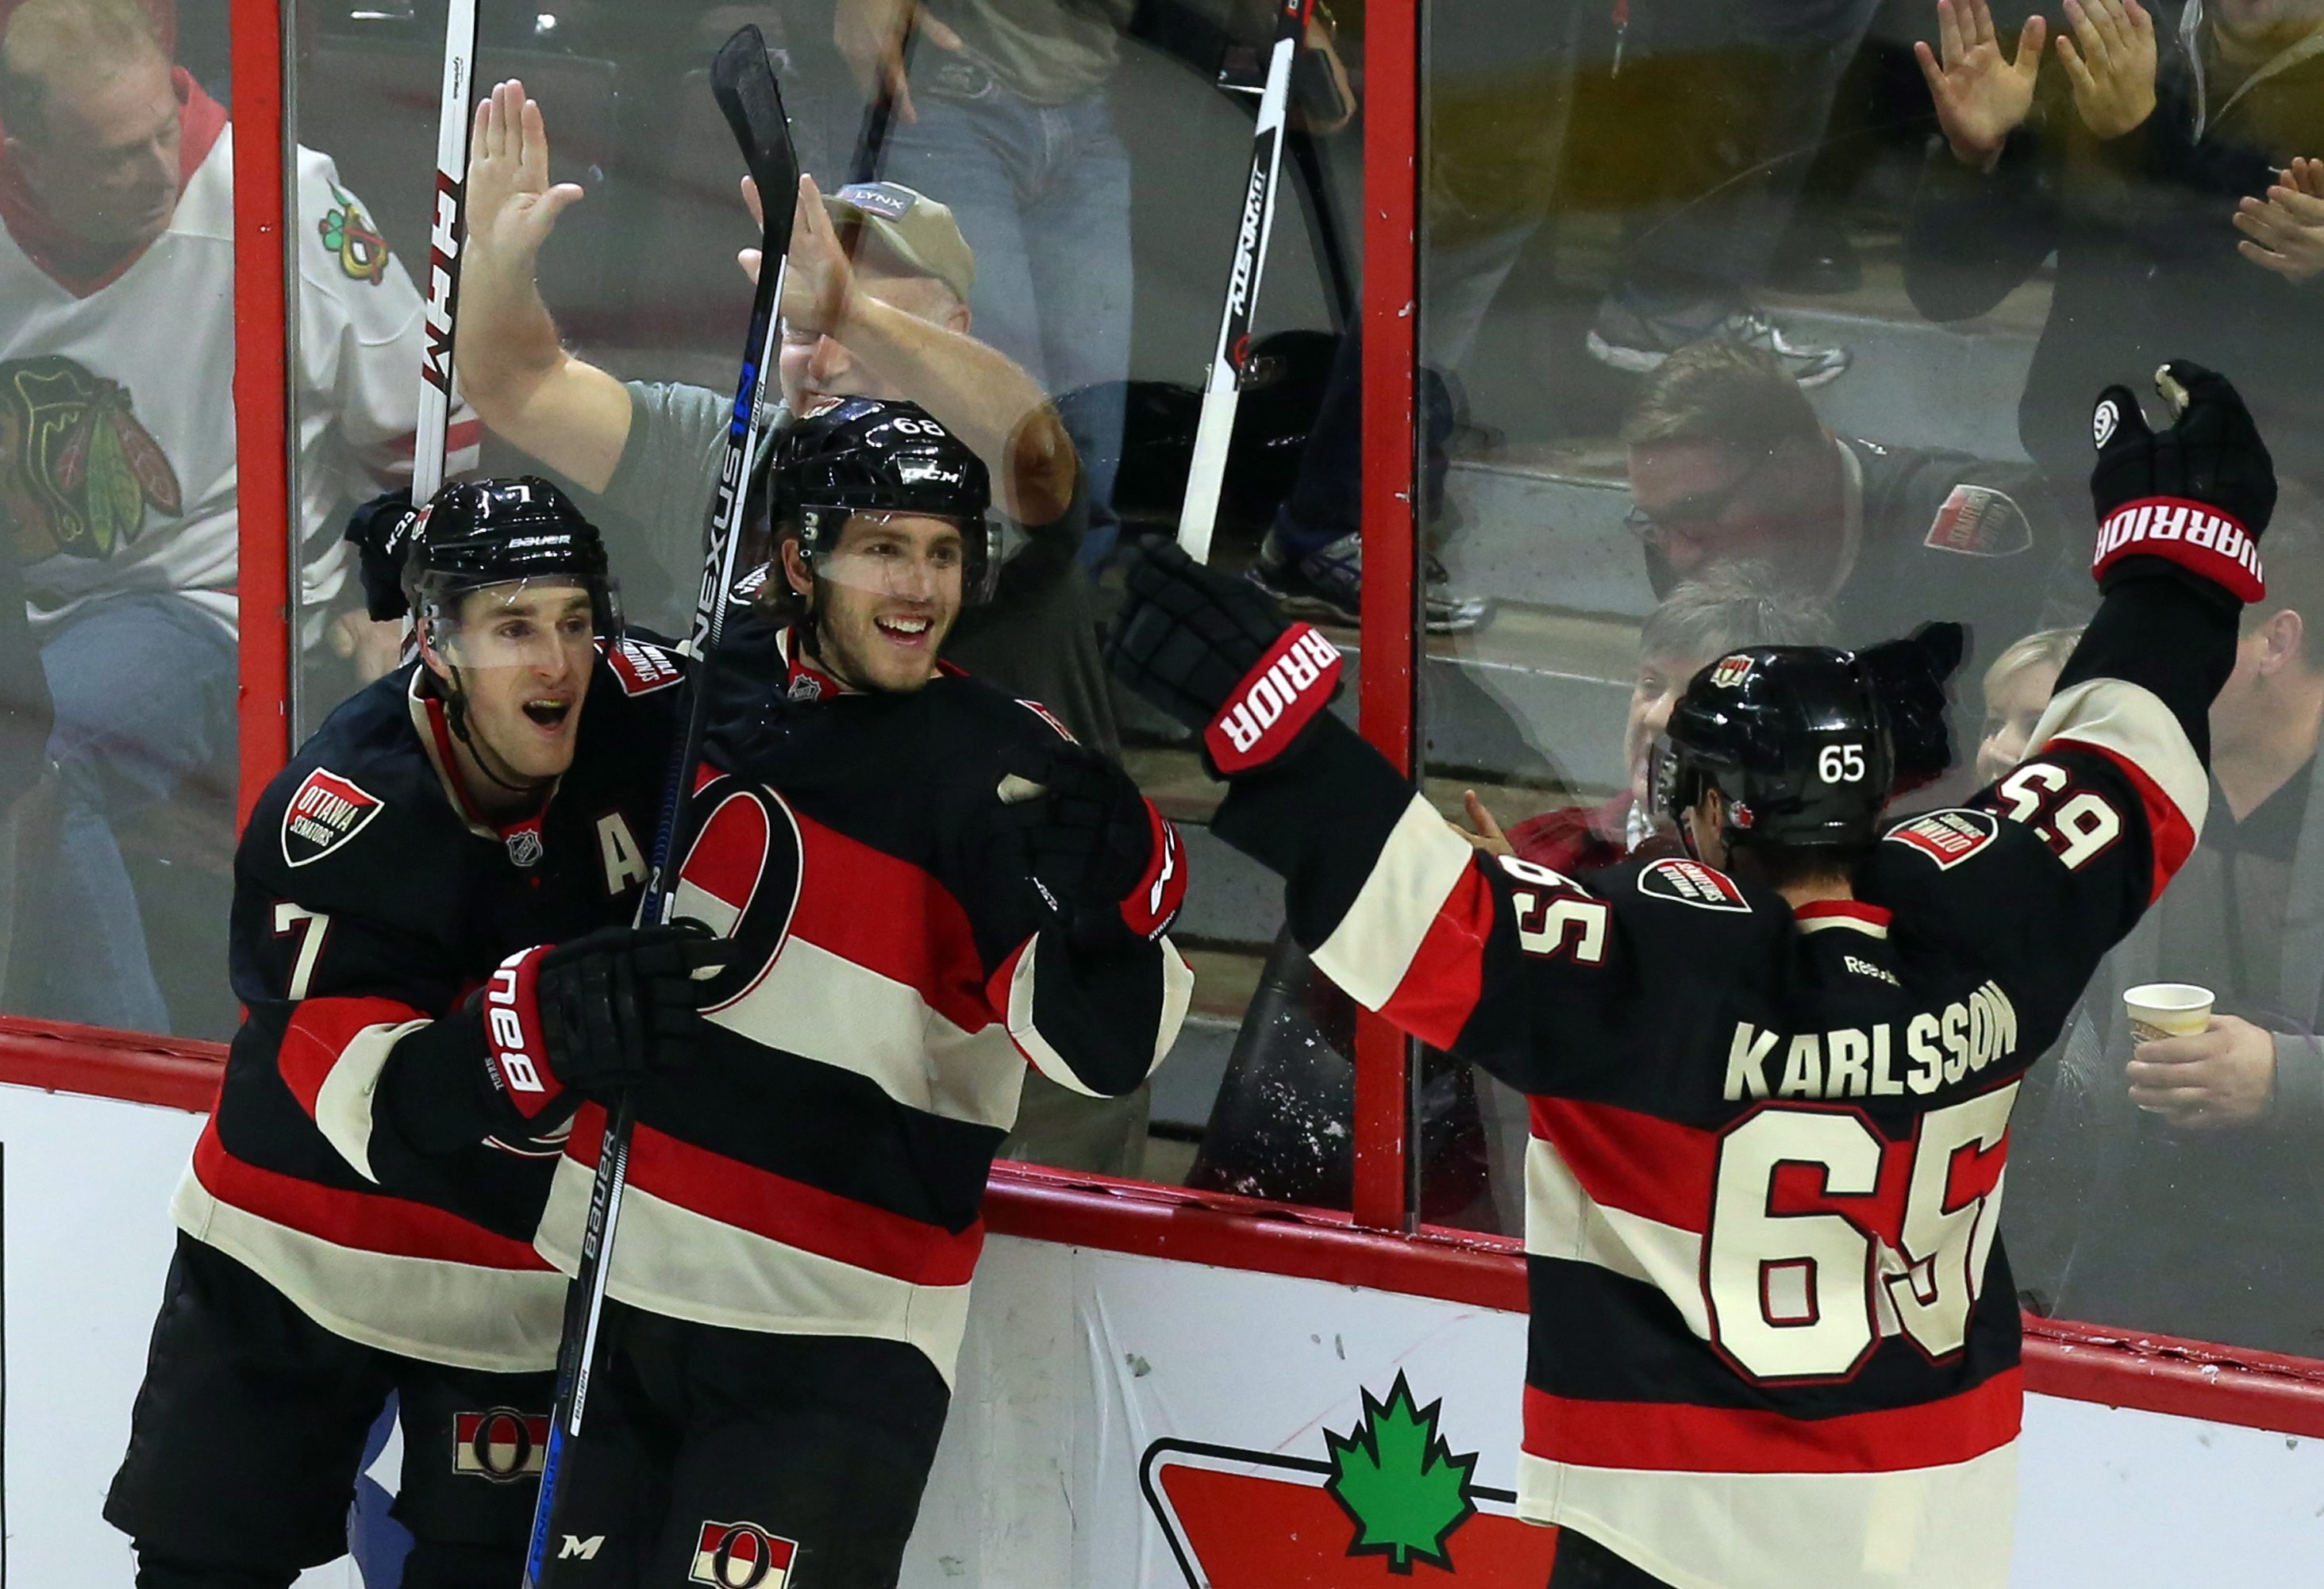 Ottawa Senators' Mike Hoffman (68) celebrates his game winning overtime goal against the Chicago Blackhawks with teammates Erik Karlsson (65) and Kyle Turris (7) during an NHL hockey game in Ottawa, Ontario, Thursday, Dec. 3, 2015. (Fred Chartrand/The Can